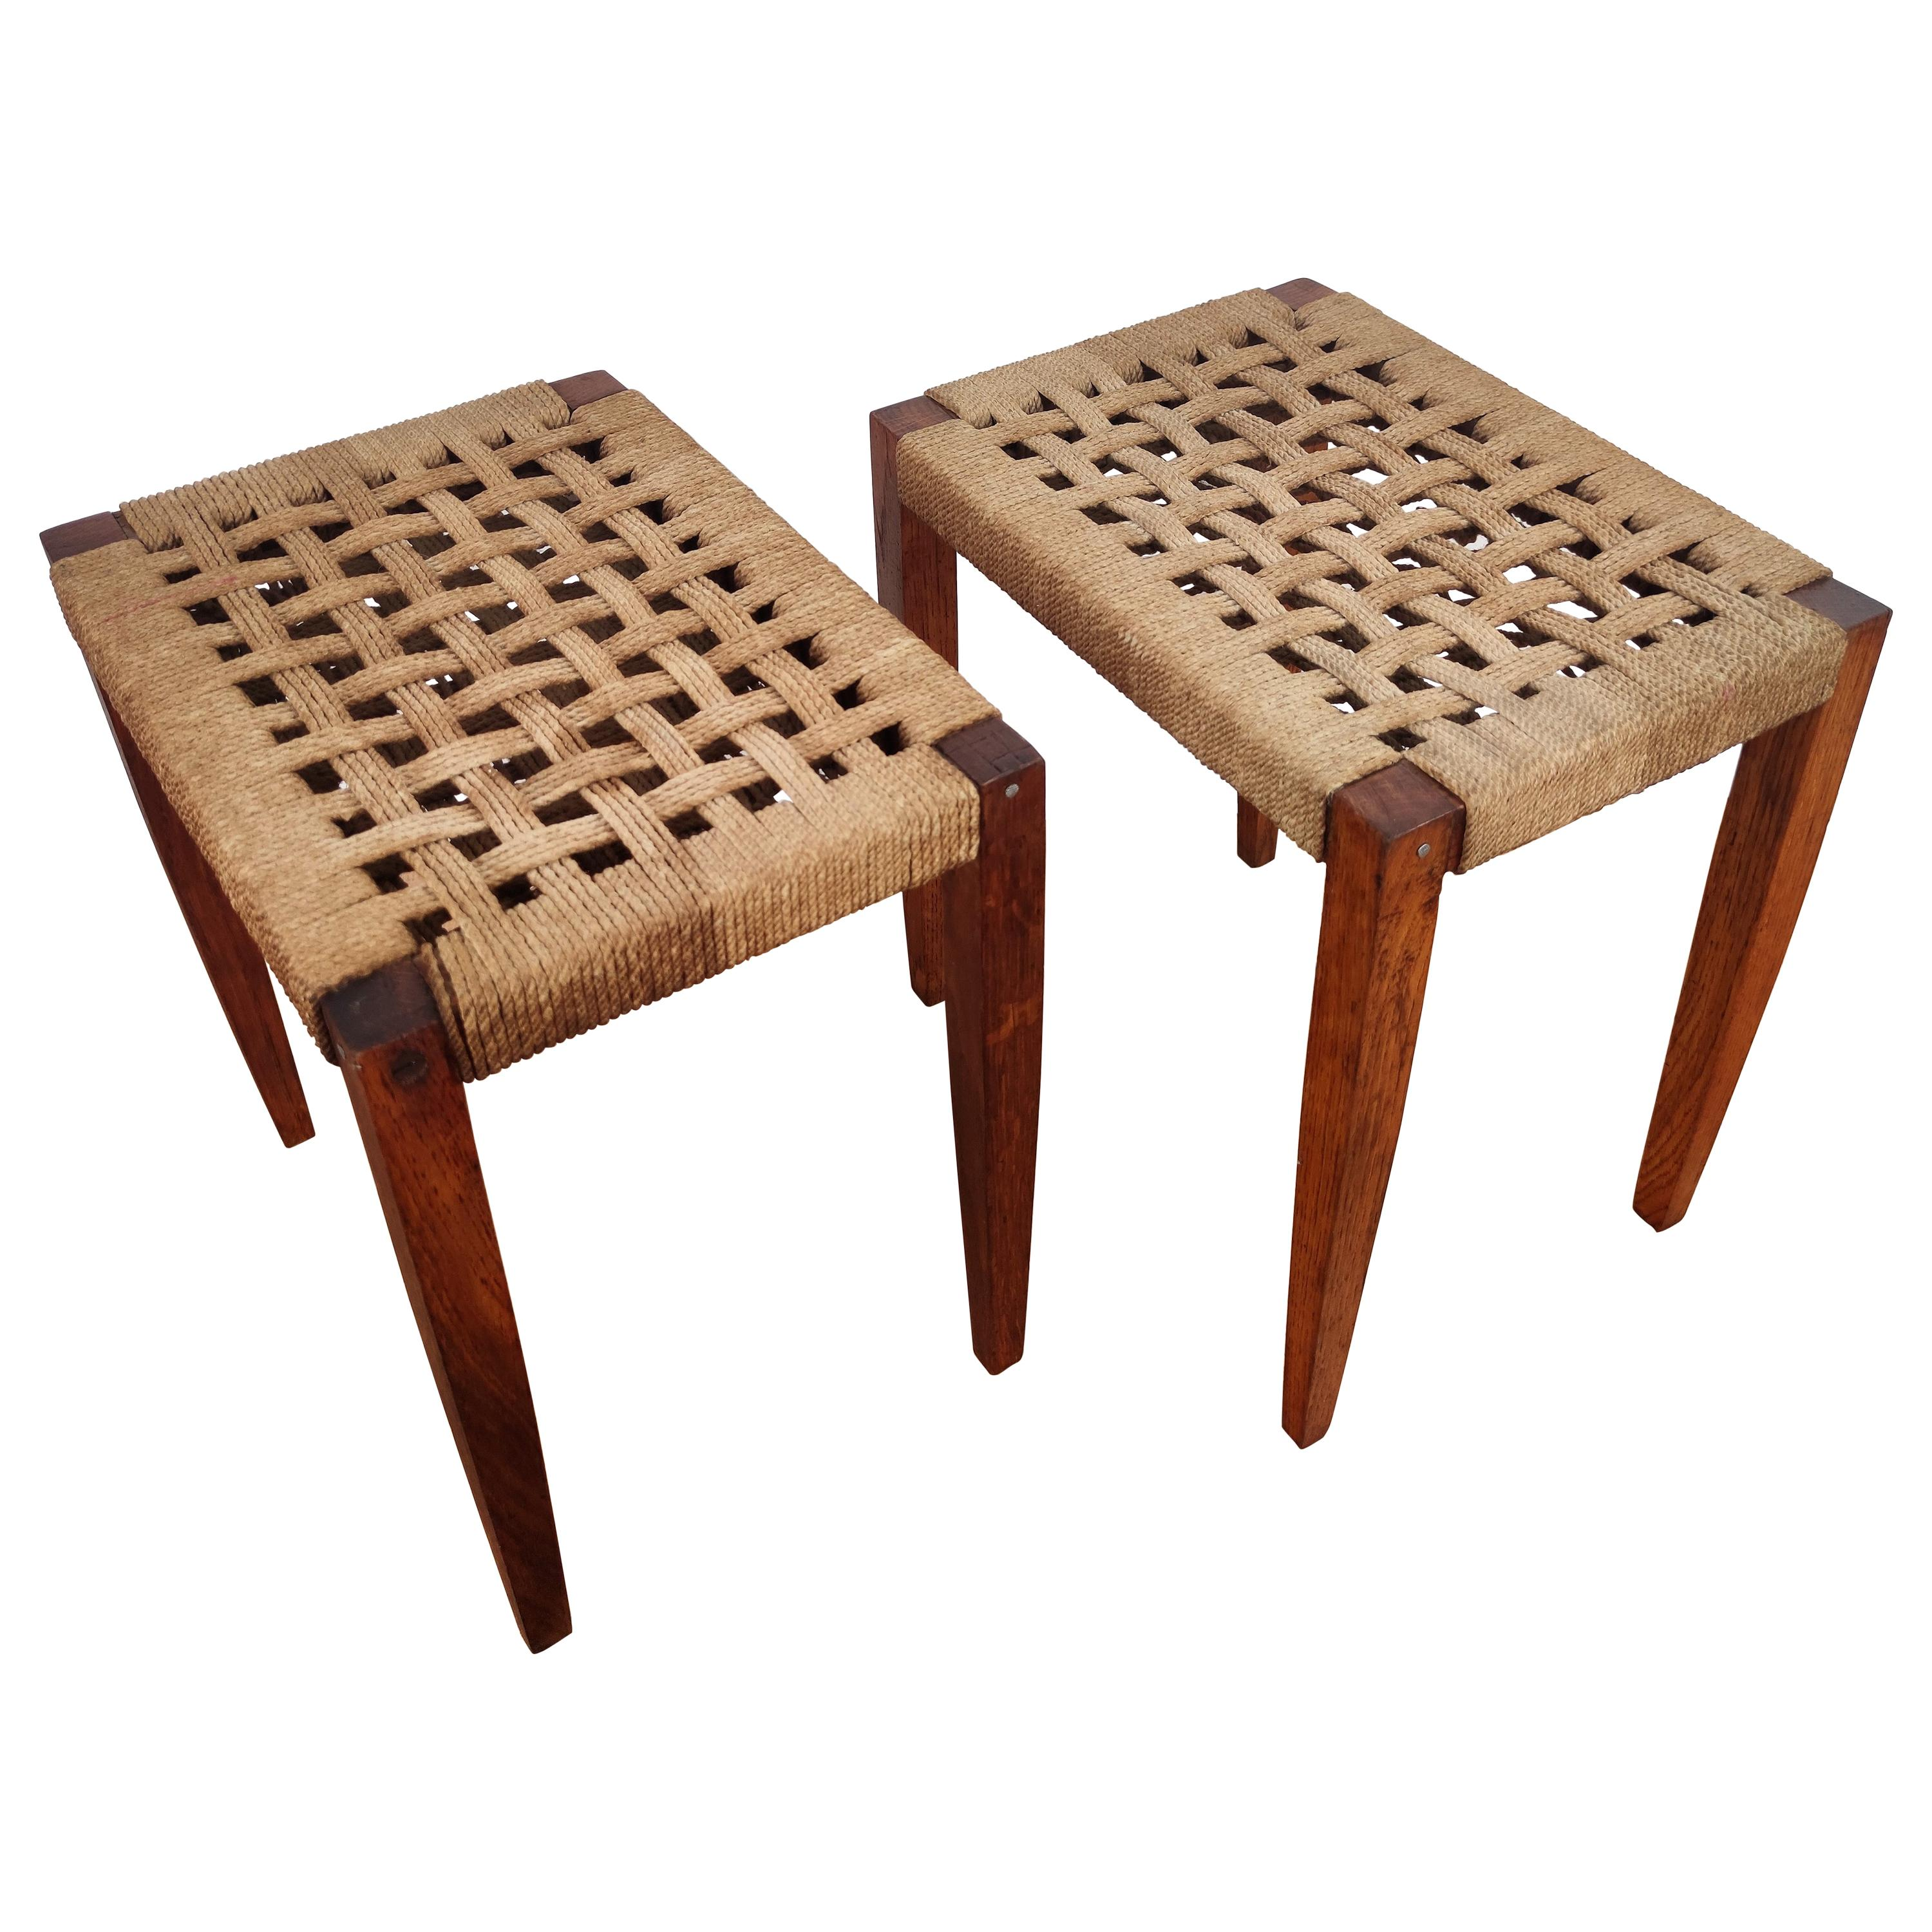 Pair of 1960s Italian Midcentury Wood and Cord Woven Rope Stools